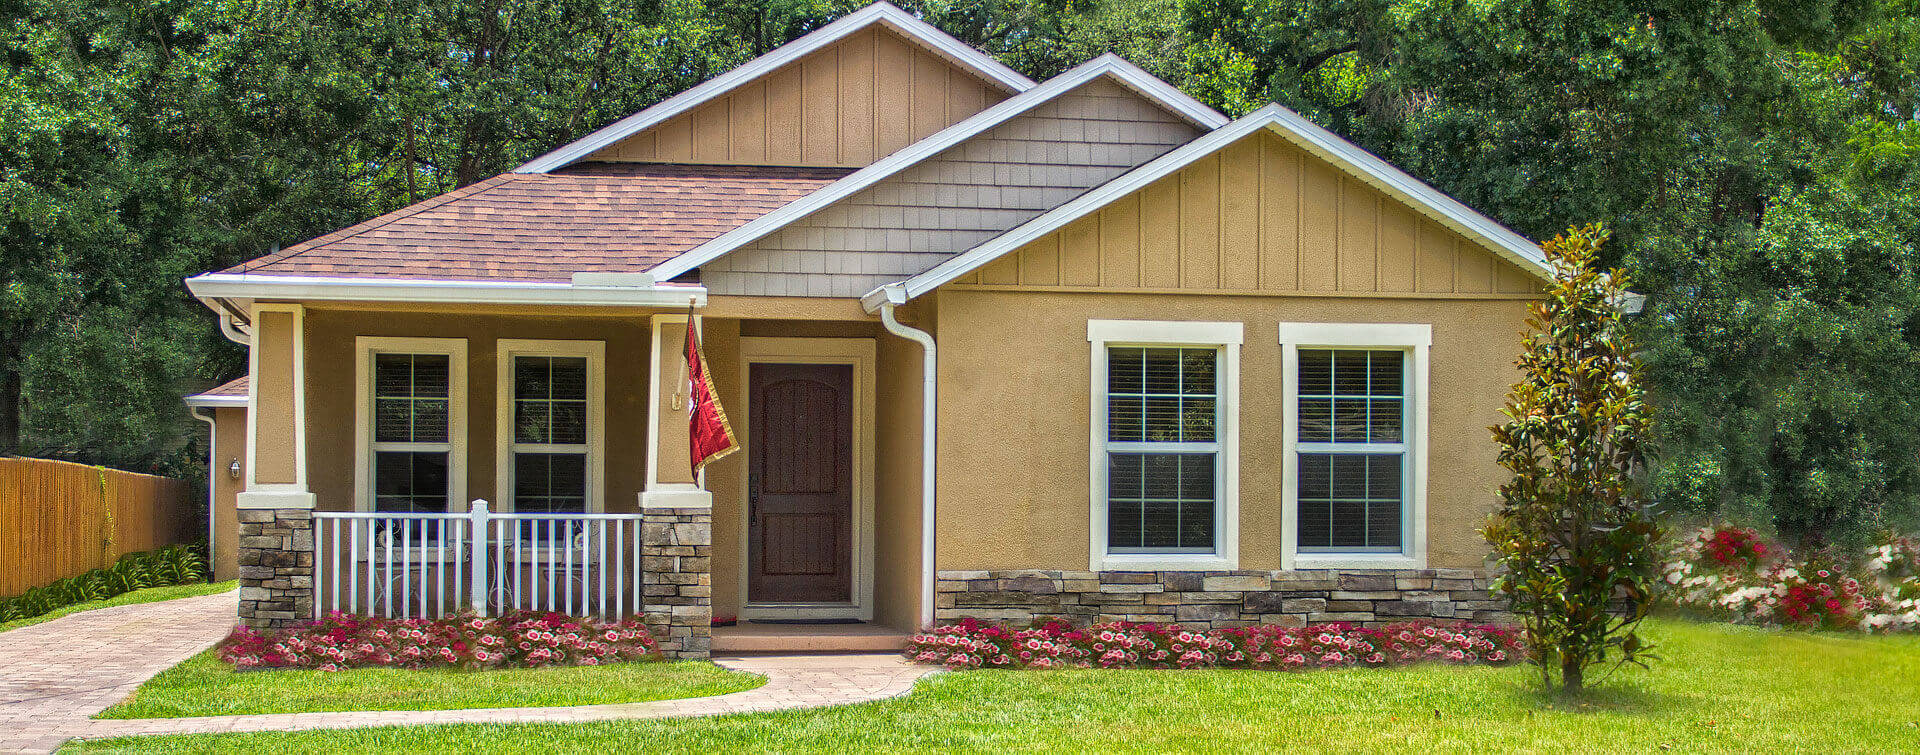 Building The Home of Your Dreams On Your Lot